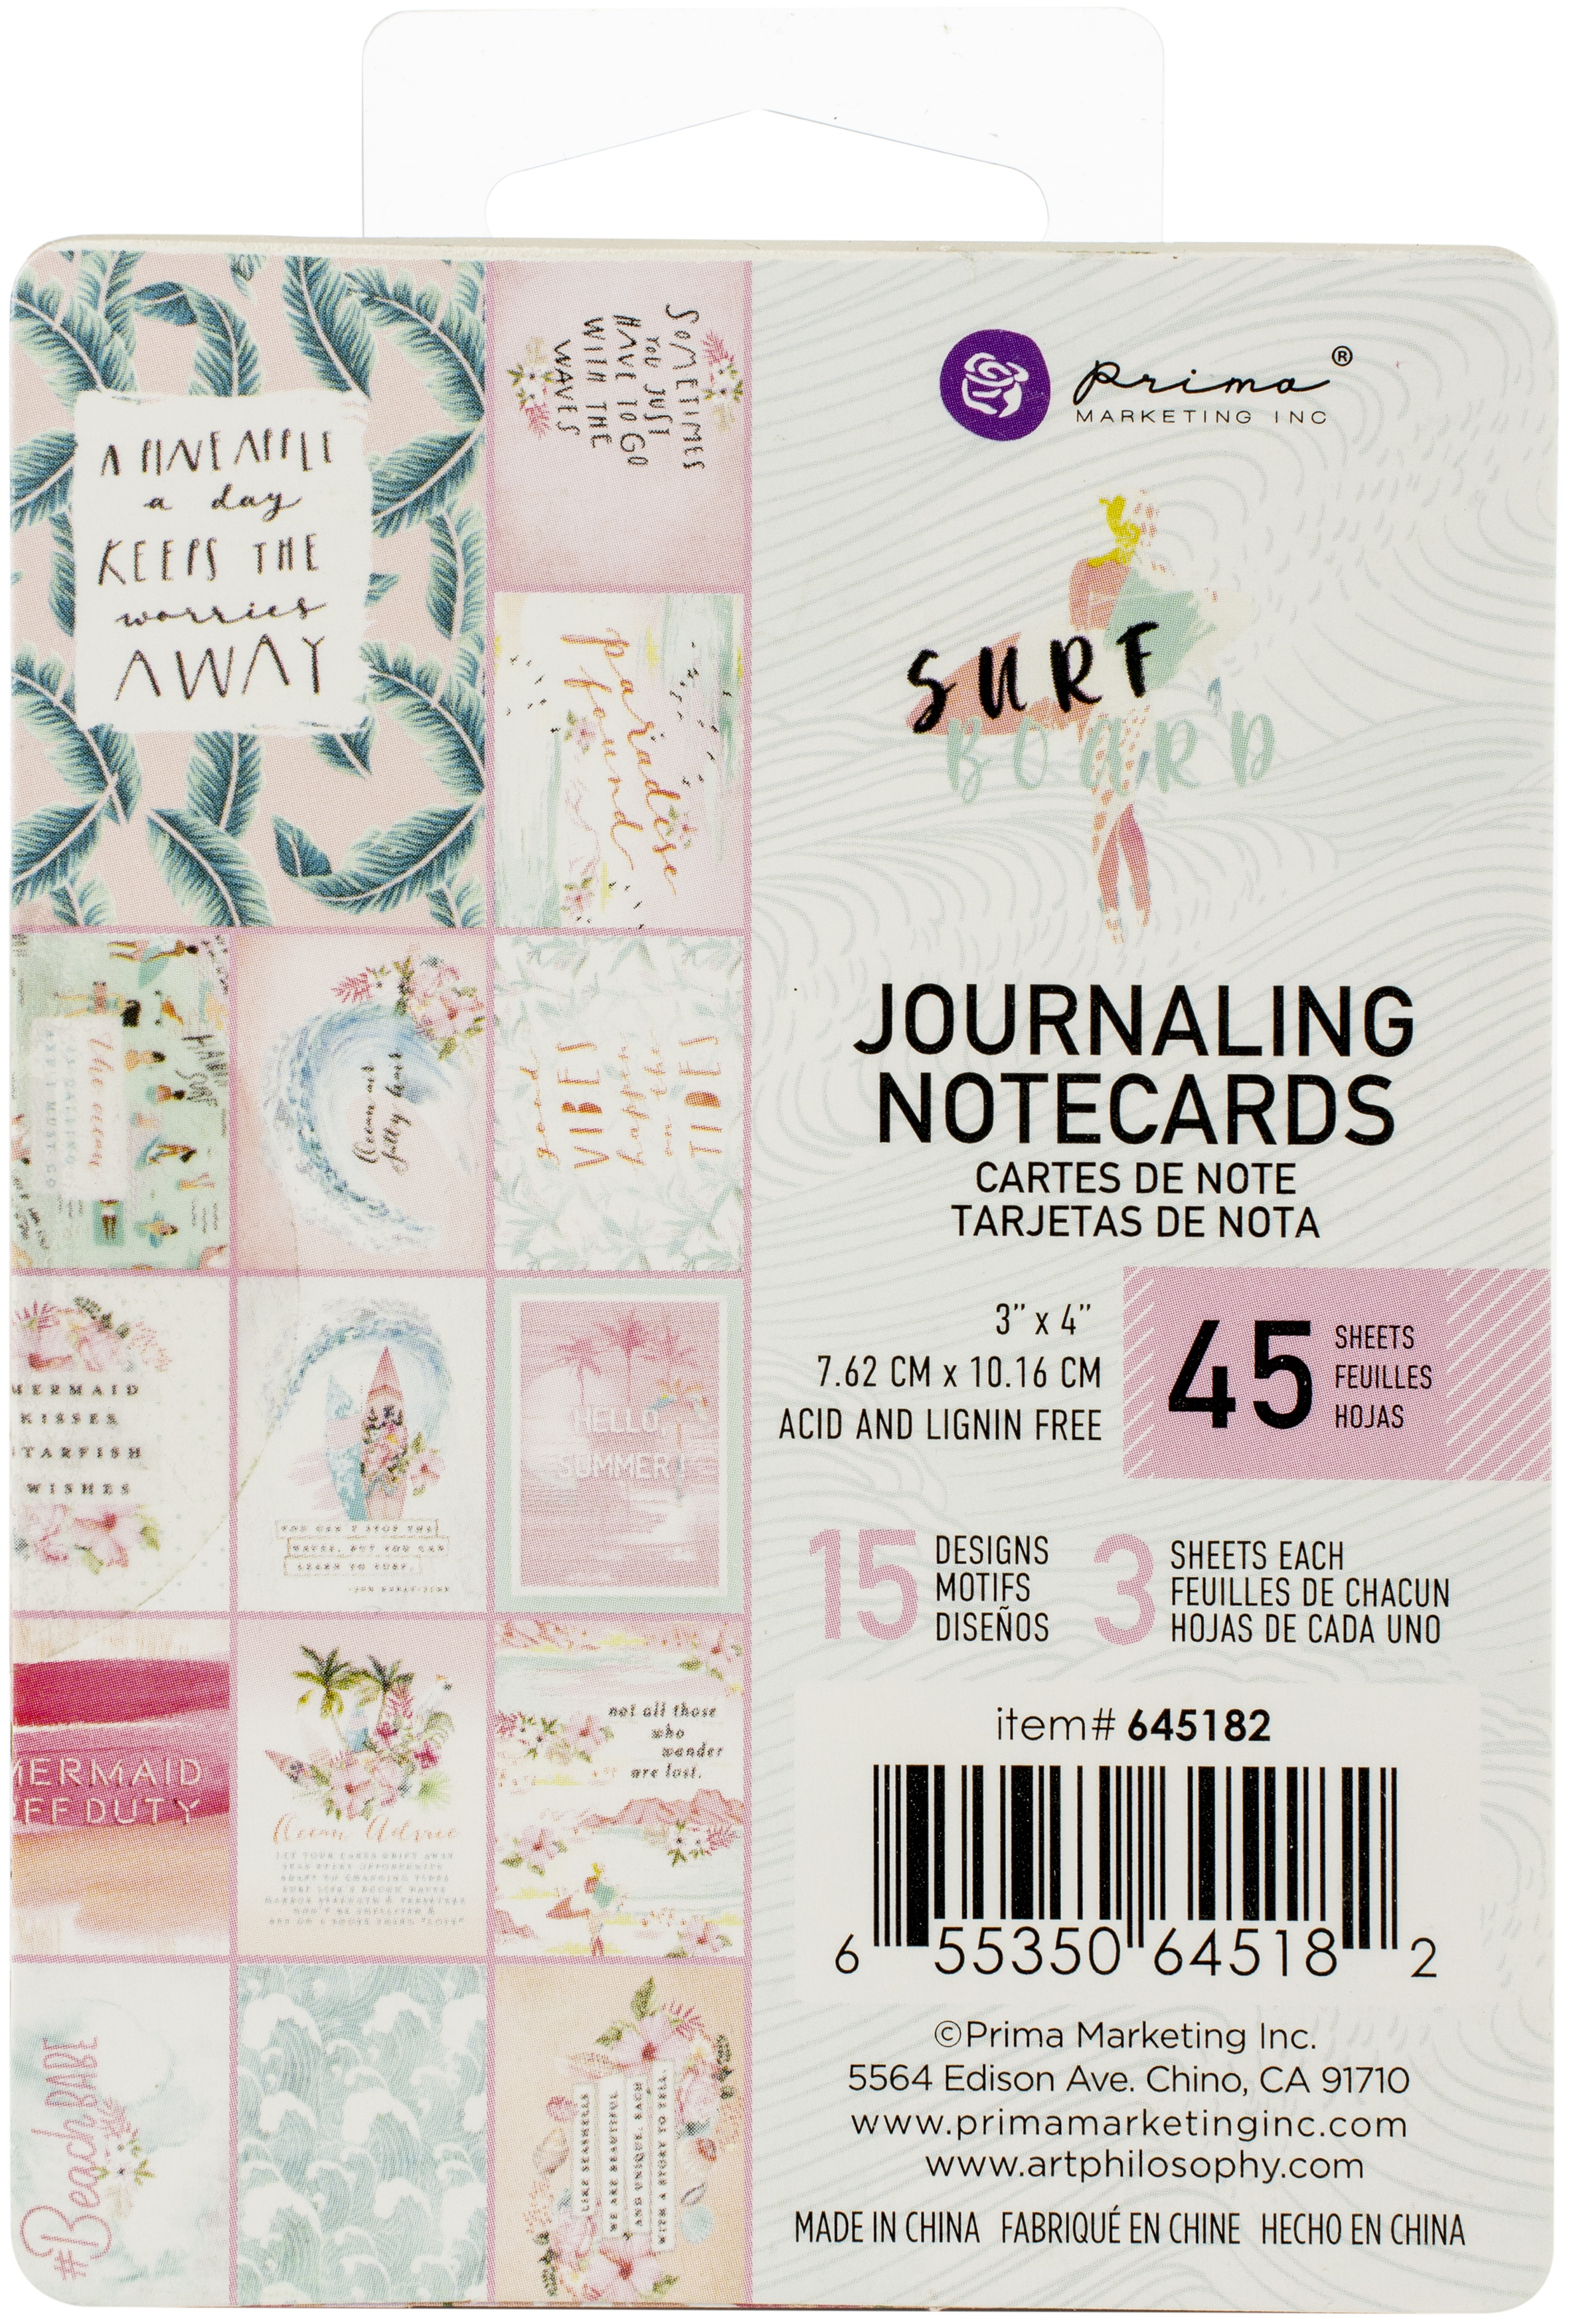 Surfboard Journaling Cards 3X4